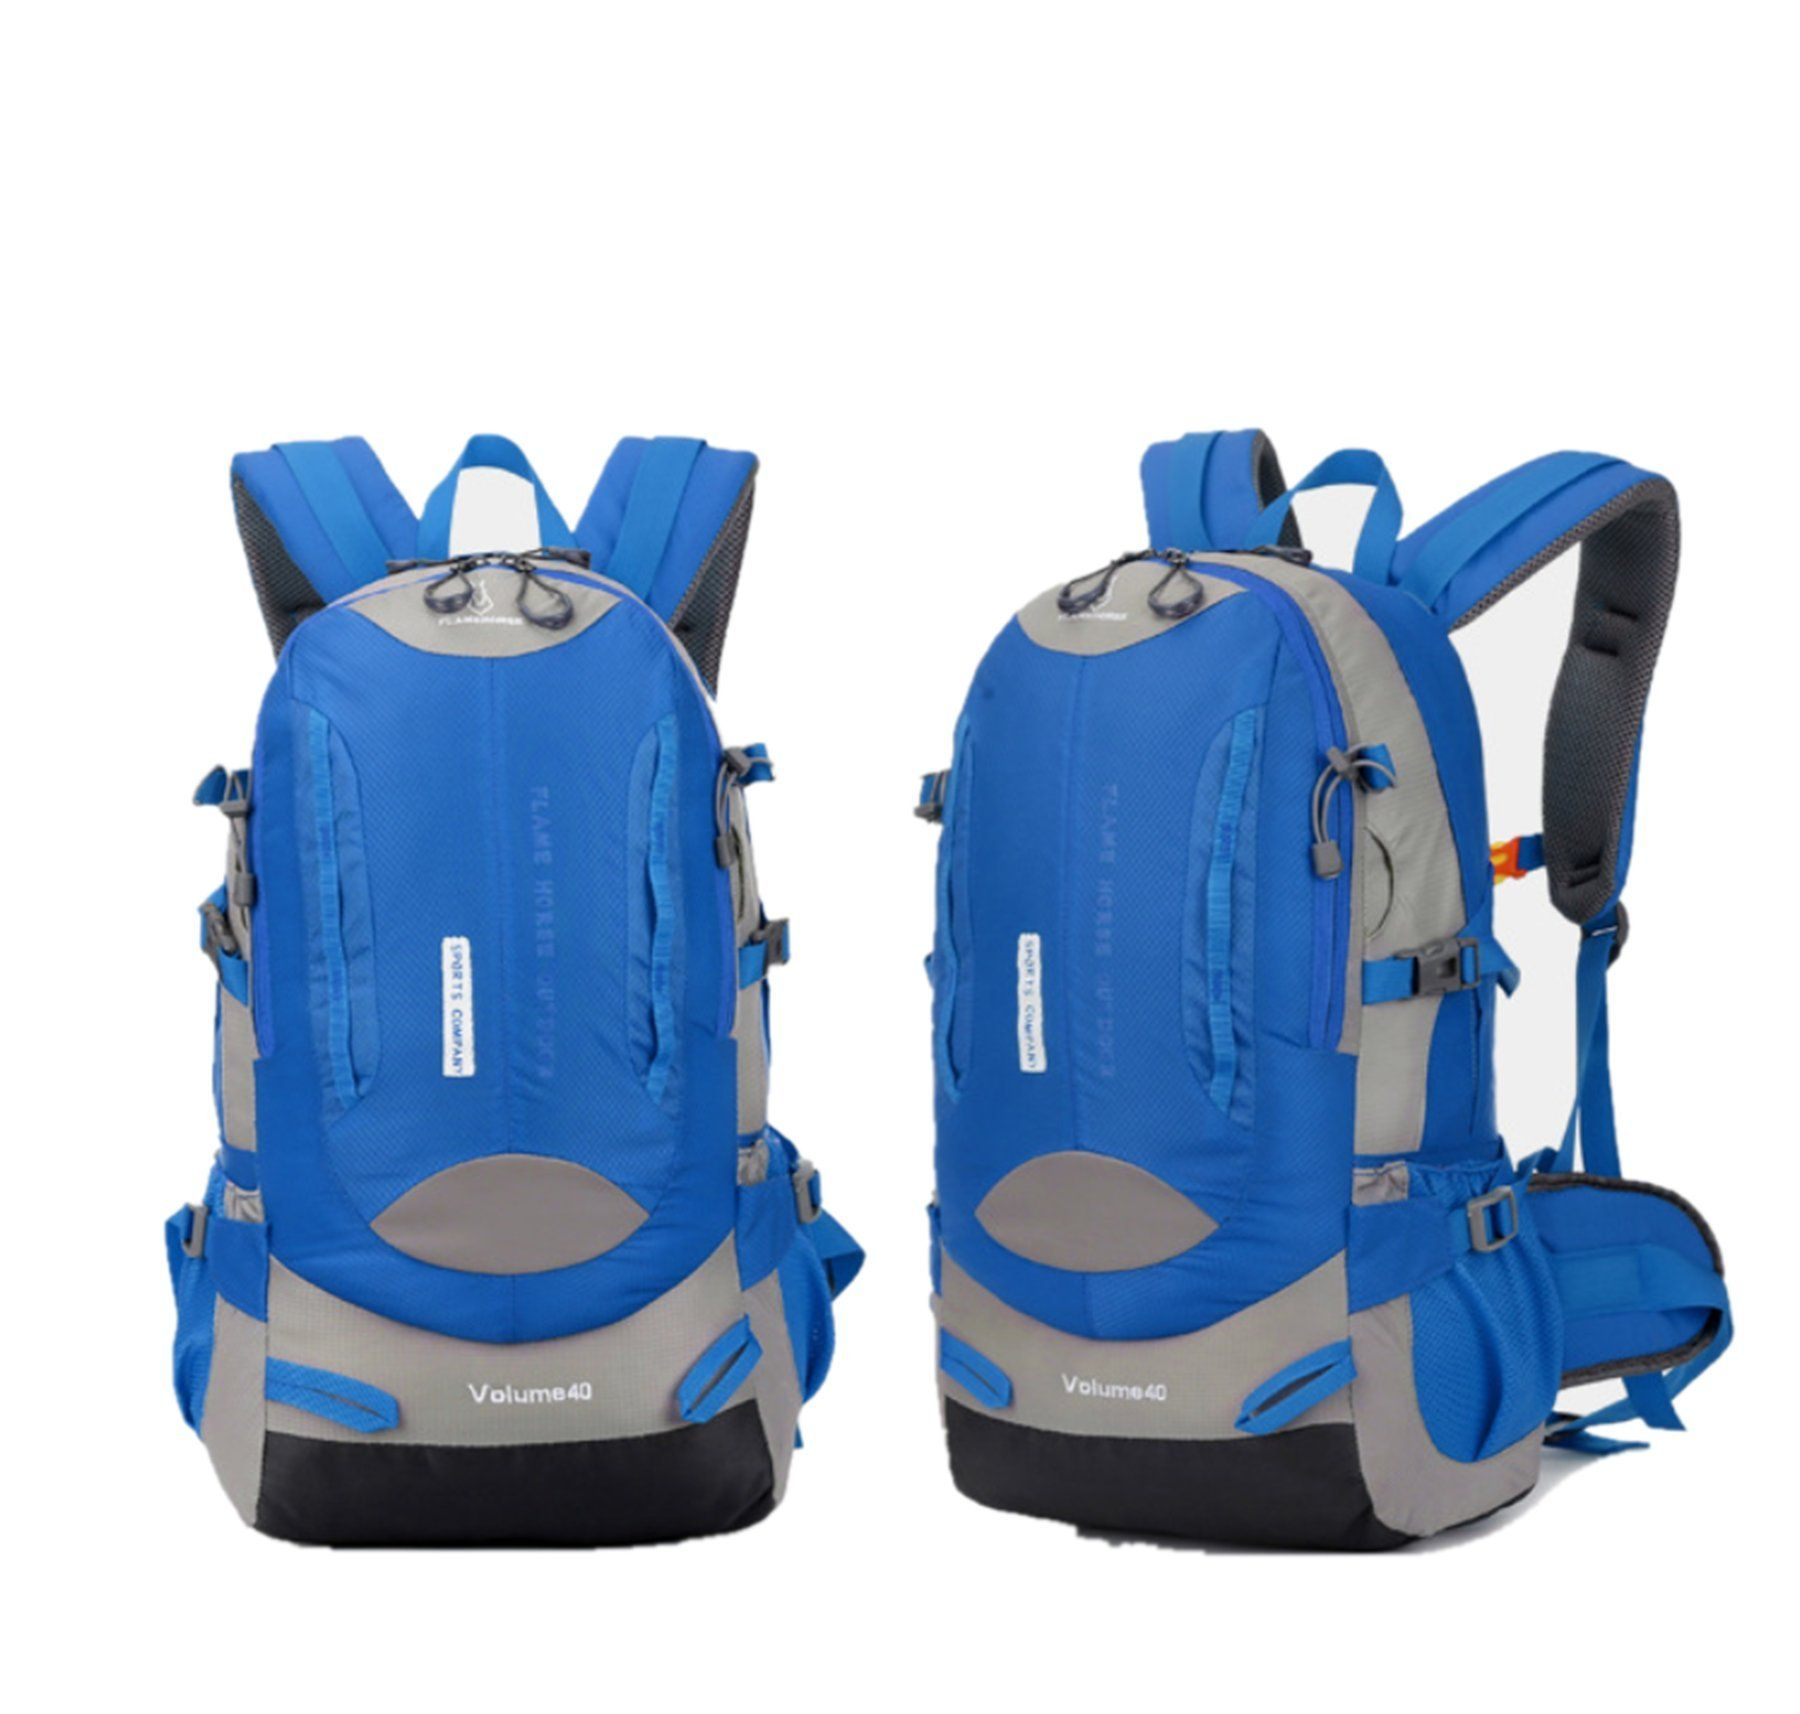 610b92c9359f Graybird 40 Liter Hiking Backpack Outdoor Camping Daypack Travel ...